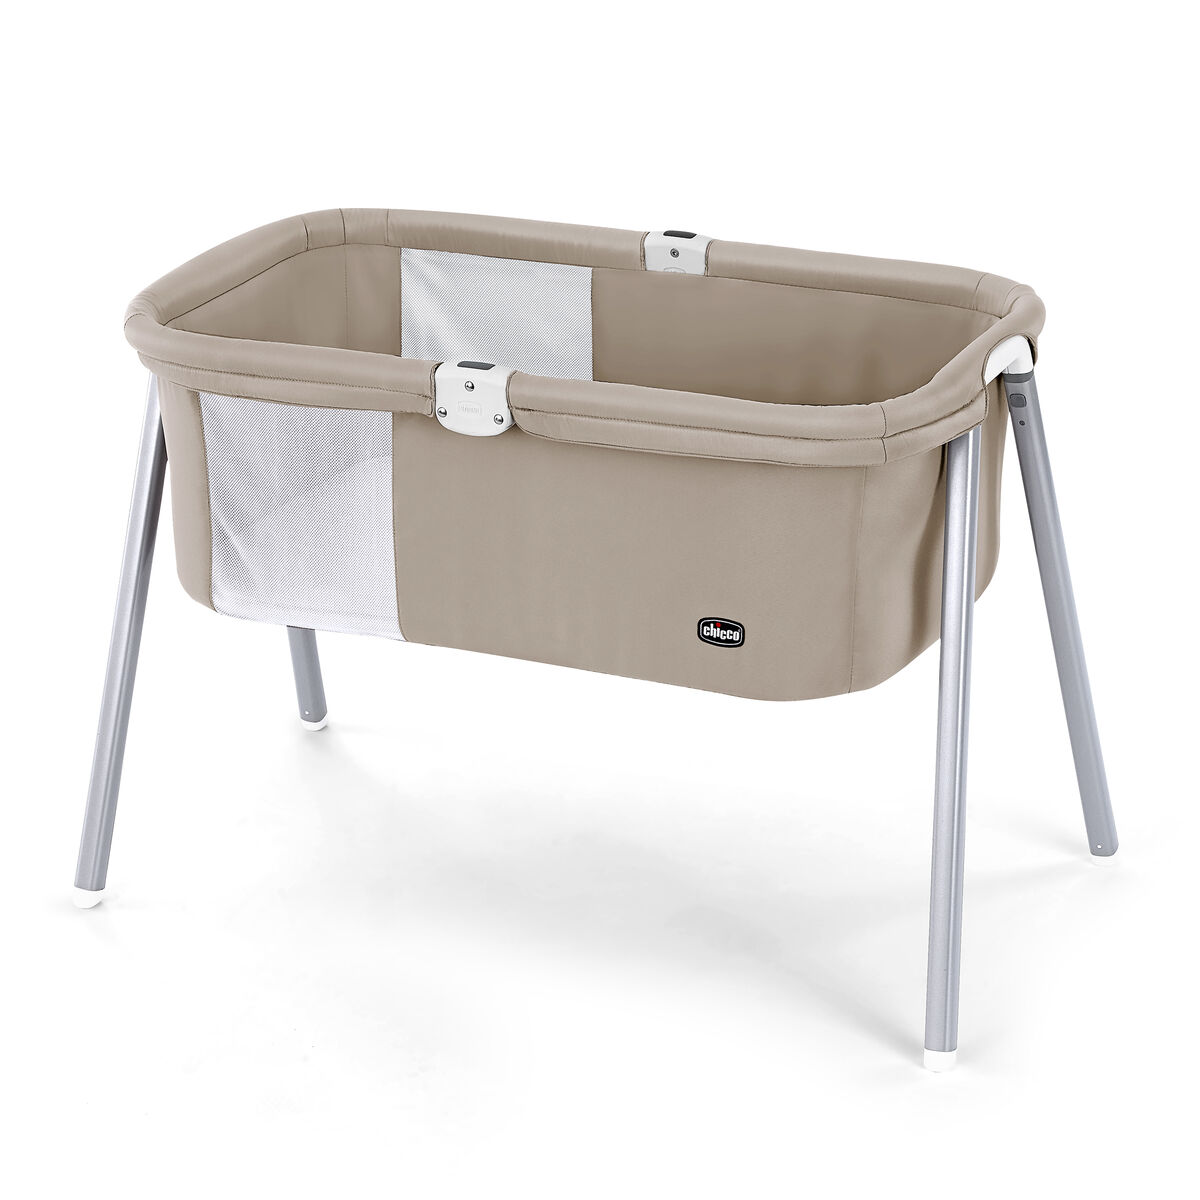 Baby bed vs bassinet - Lullago Portable Bassinet Acornlullago Portable Bassinet Acorn